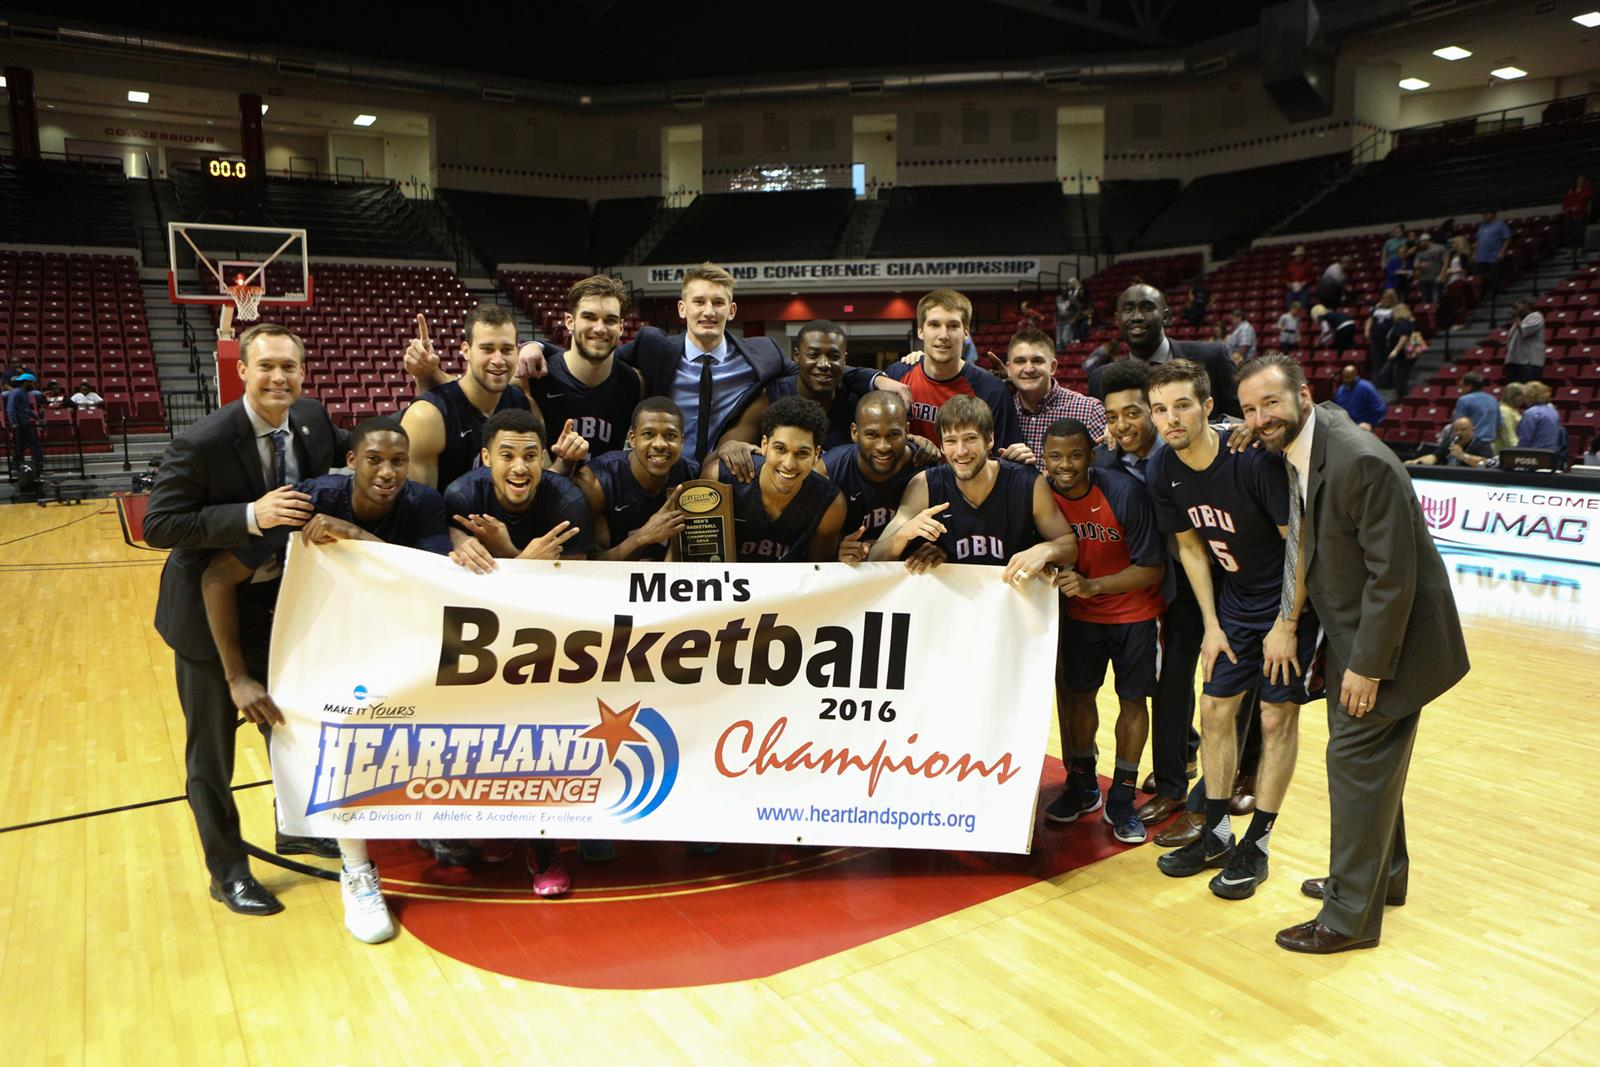 Remy Ndiaye and his Dallas Baptist teammates win the Heartland Conference Championship